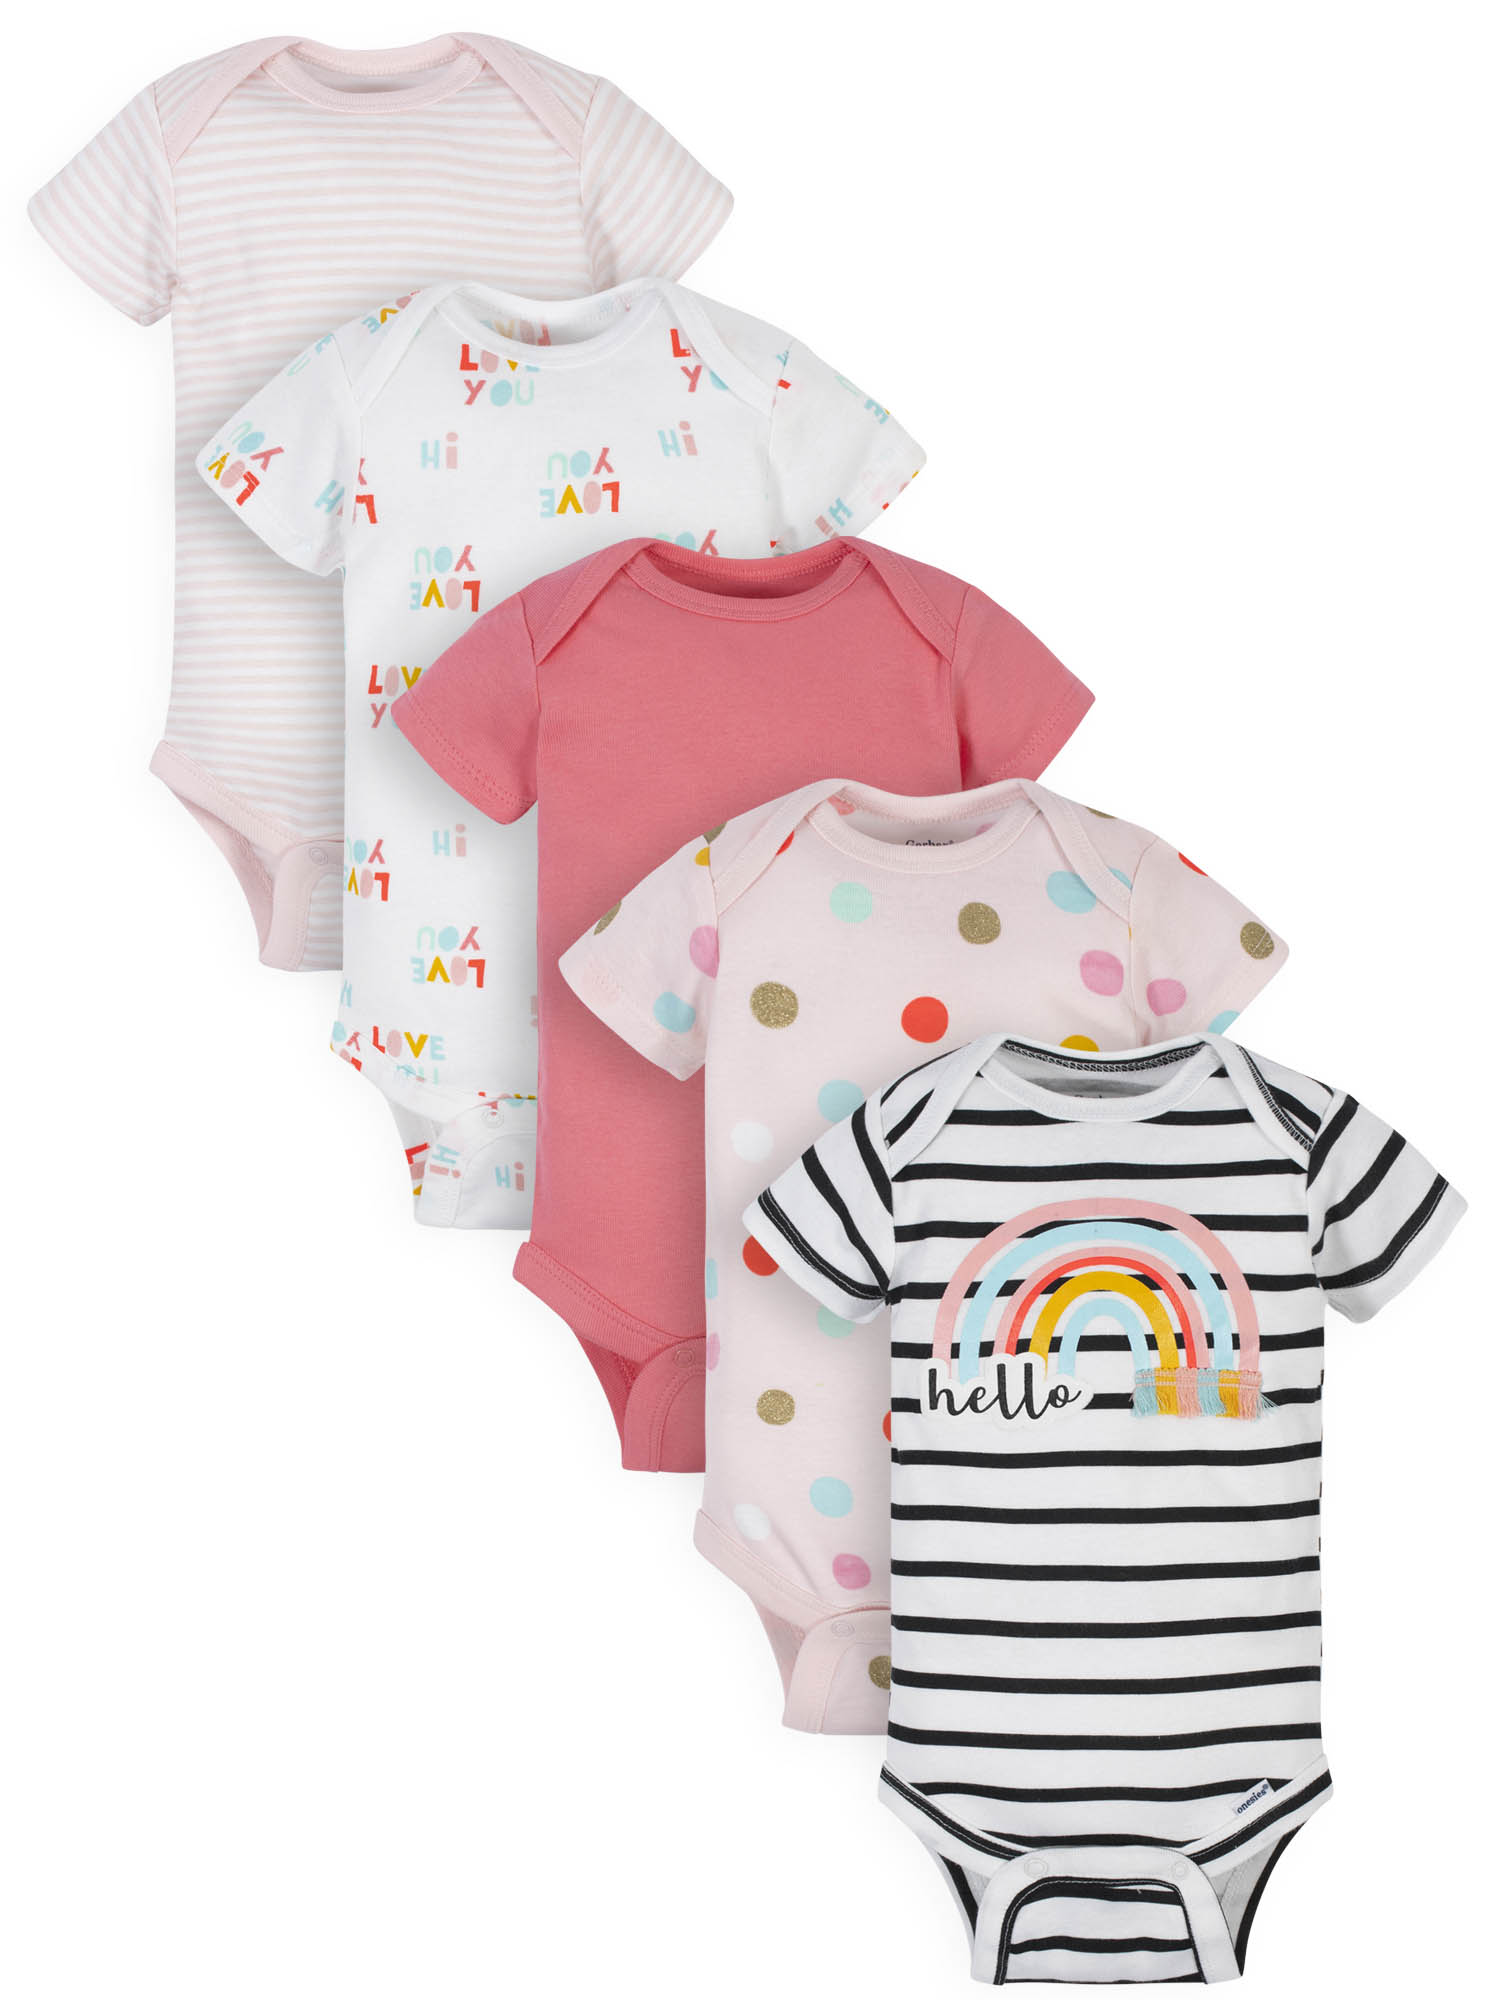 0-3 M Gerber Cute Baby Girl Clothes Bodysuit Onesie Personalized Free Diaper